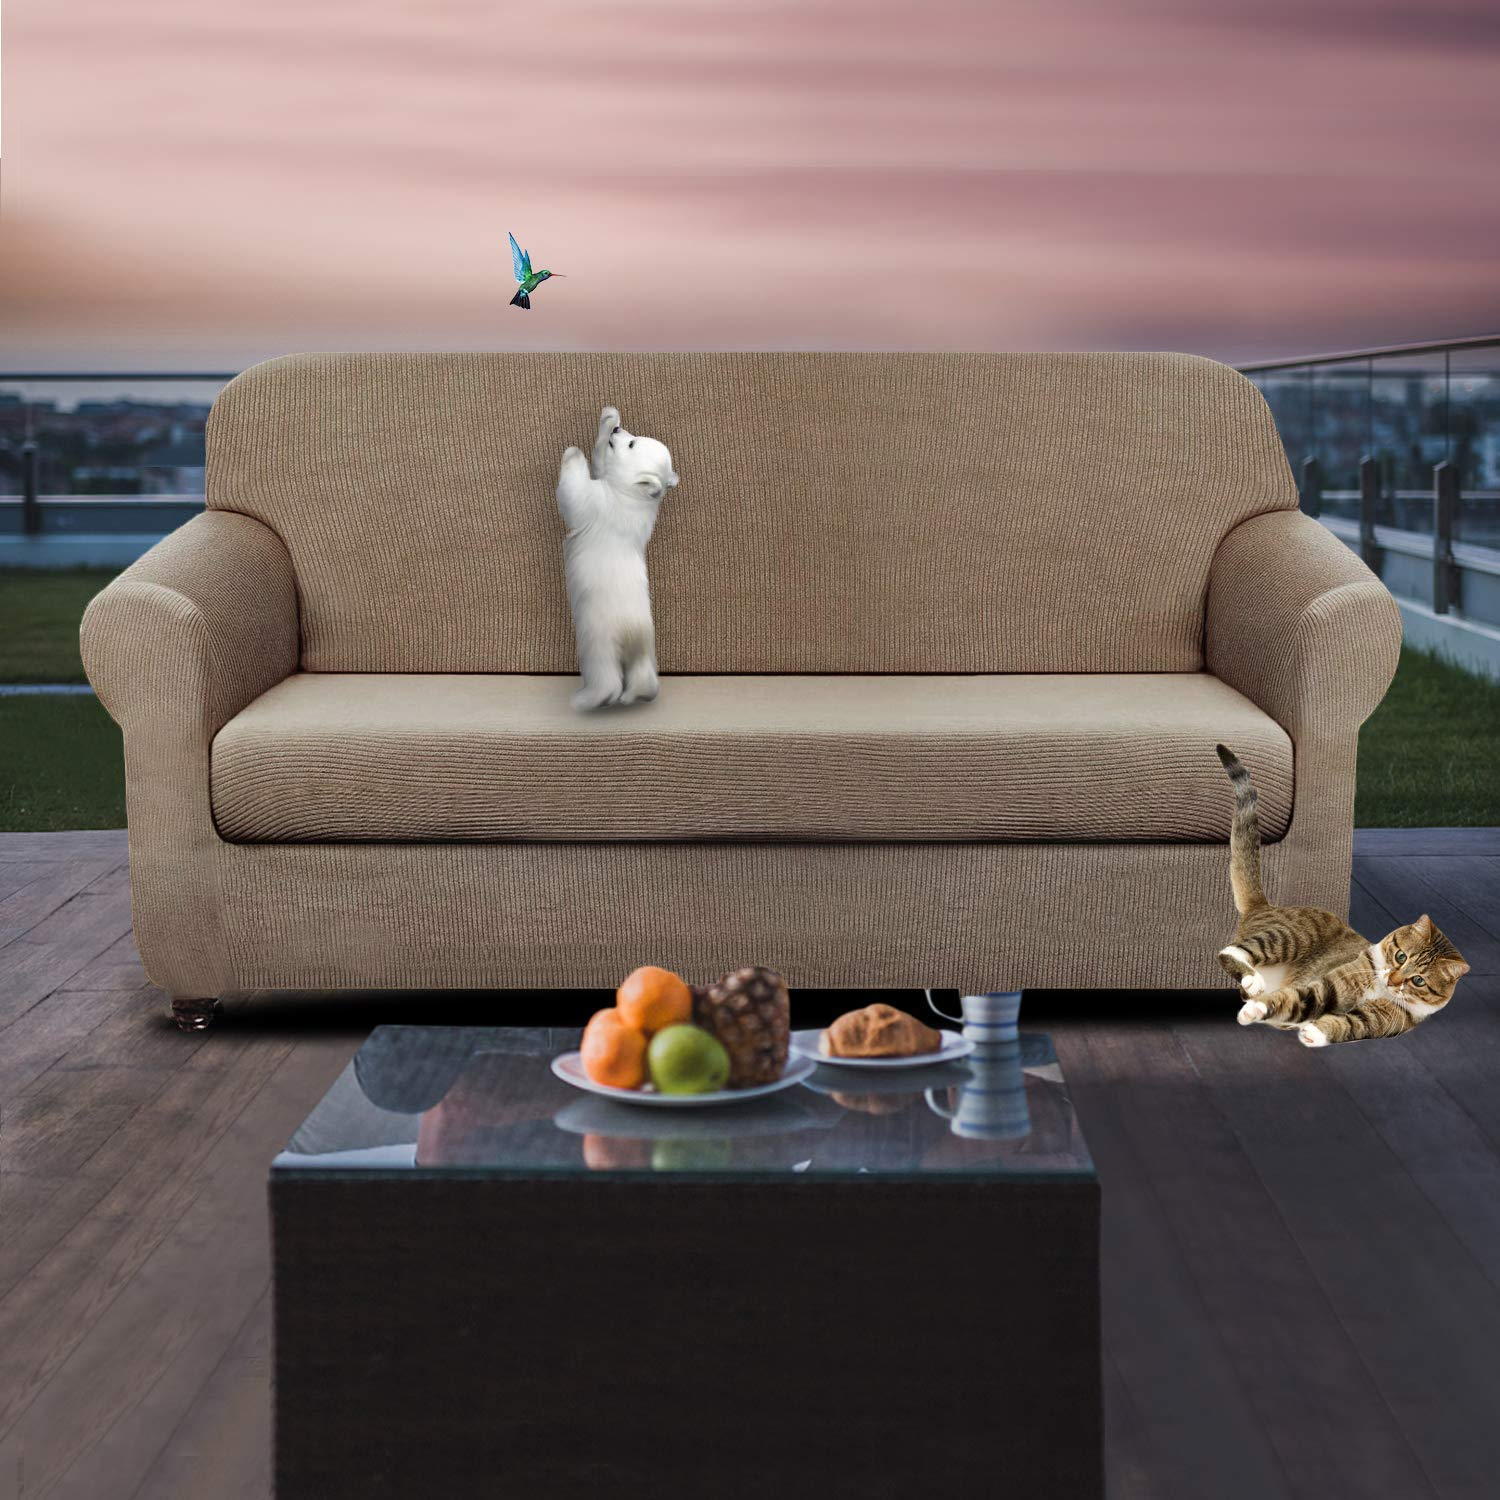 XL Sofa, Dark Coffee Chelzen Tech Chelzen Stretch Sofa Covers Living Room 2-Piece Extra Large Couch Covers Striped Furniture Protectors Spandex Fabric Dog Sofa Slipcovers